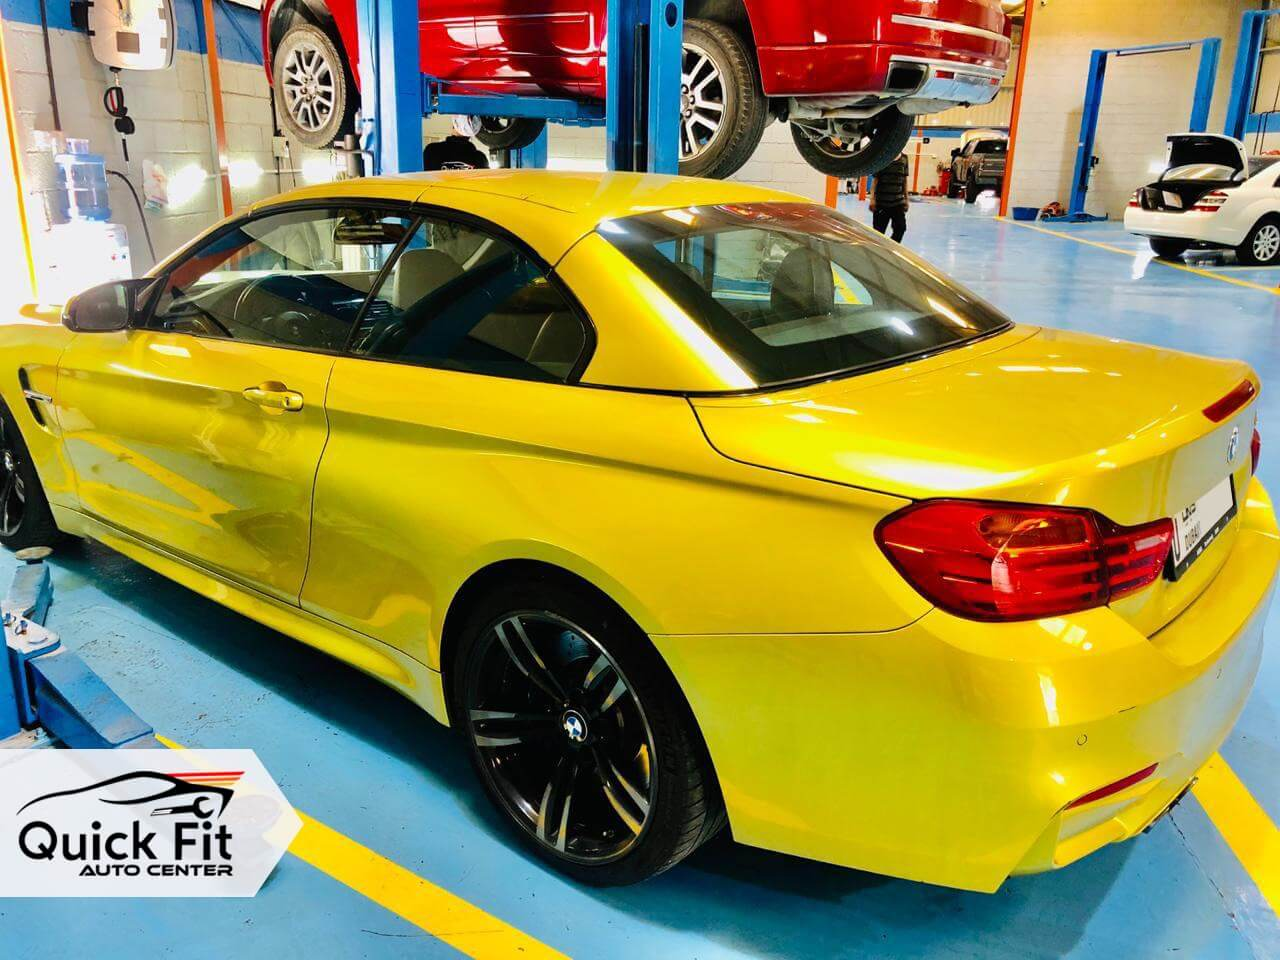 BMW For General Inspection and Electric Service in Dubai